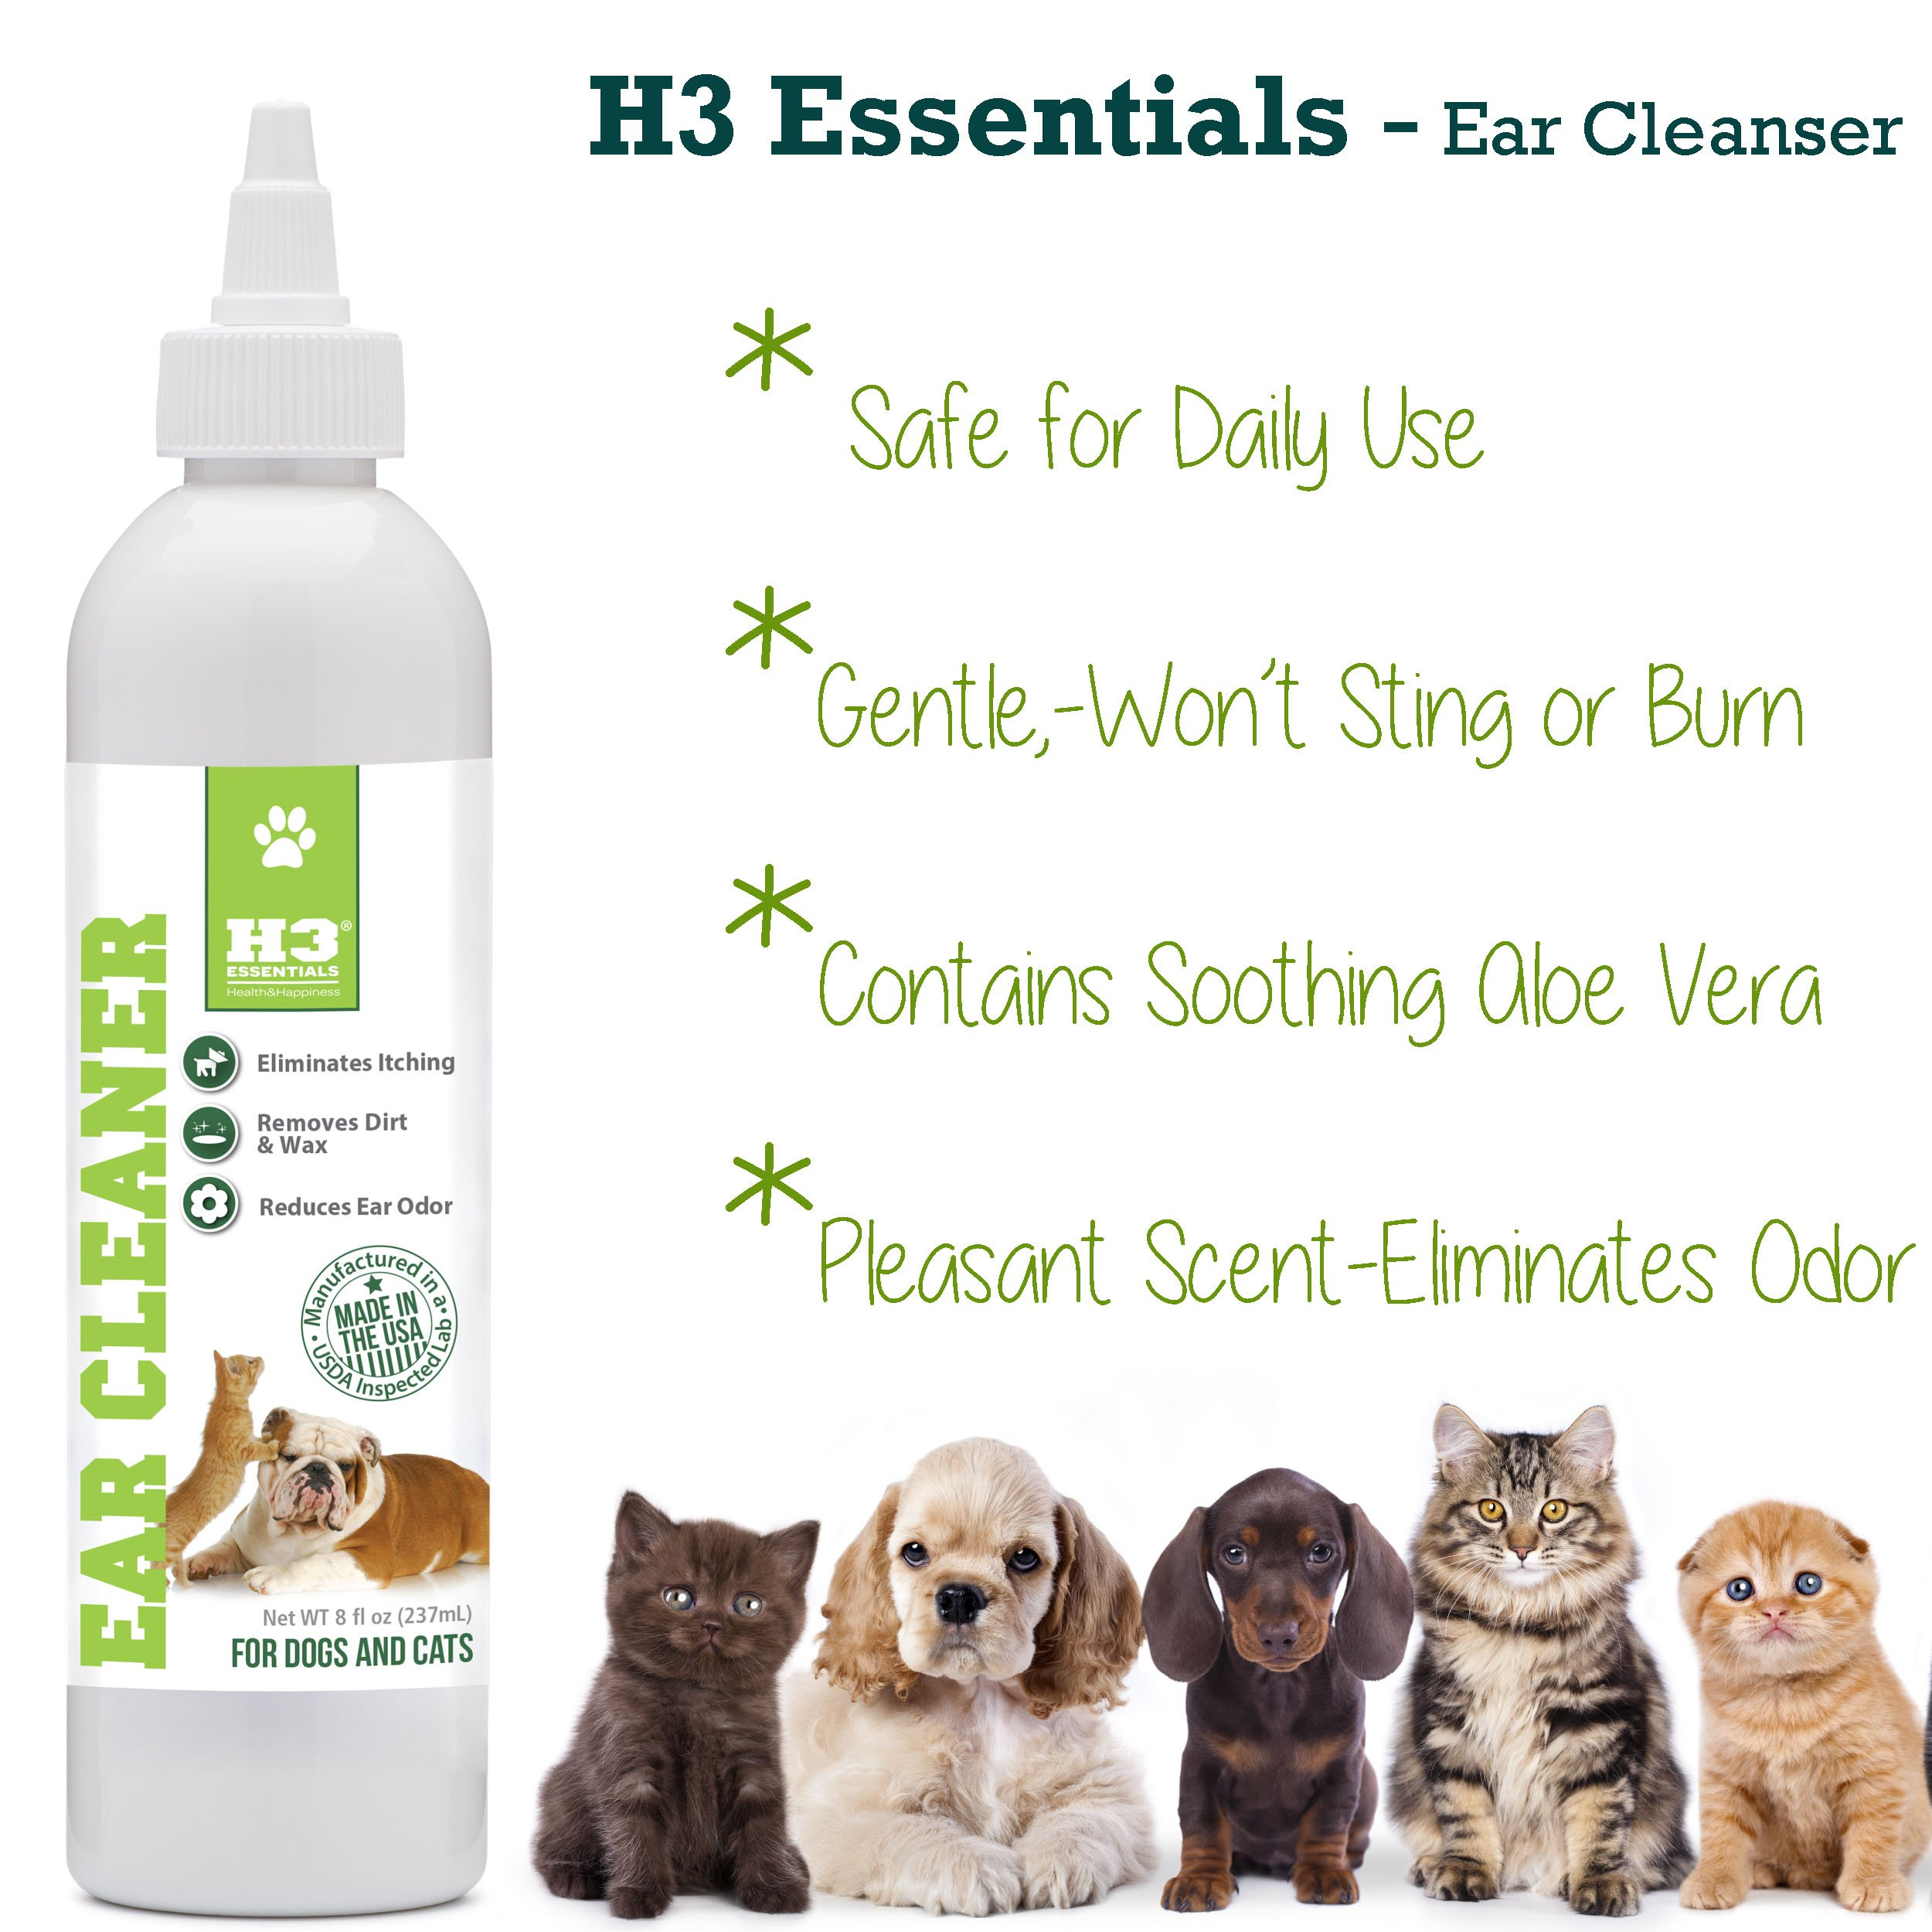 H3 Essentials Dog Ear Cleaner For Dogs and Cats with Aloe - Prevents Infection, Cleans and Dries Pets Ears - 8 oz by H3 Essentials (Image #2)